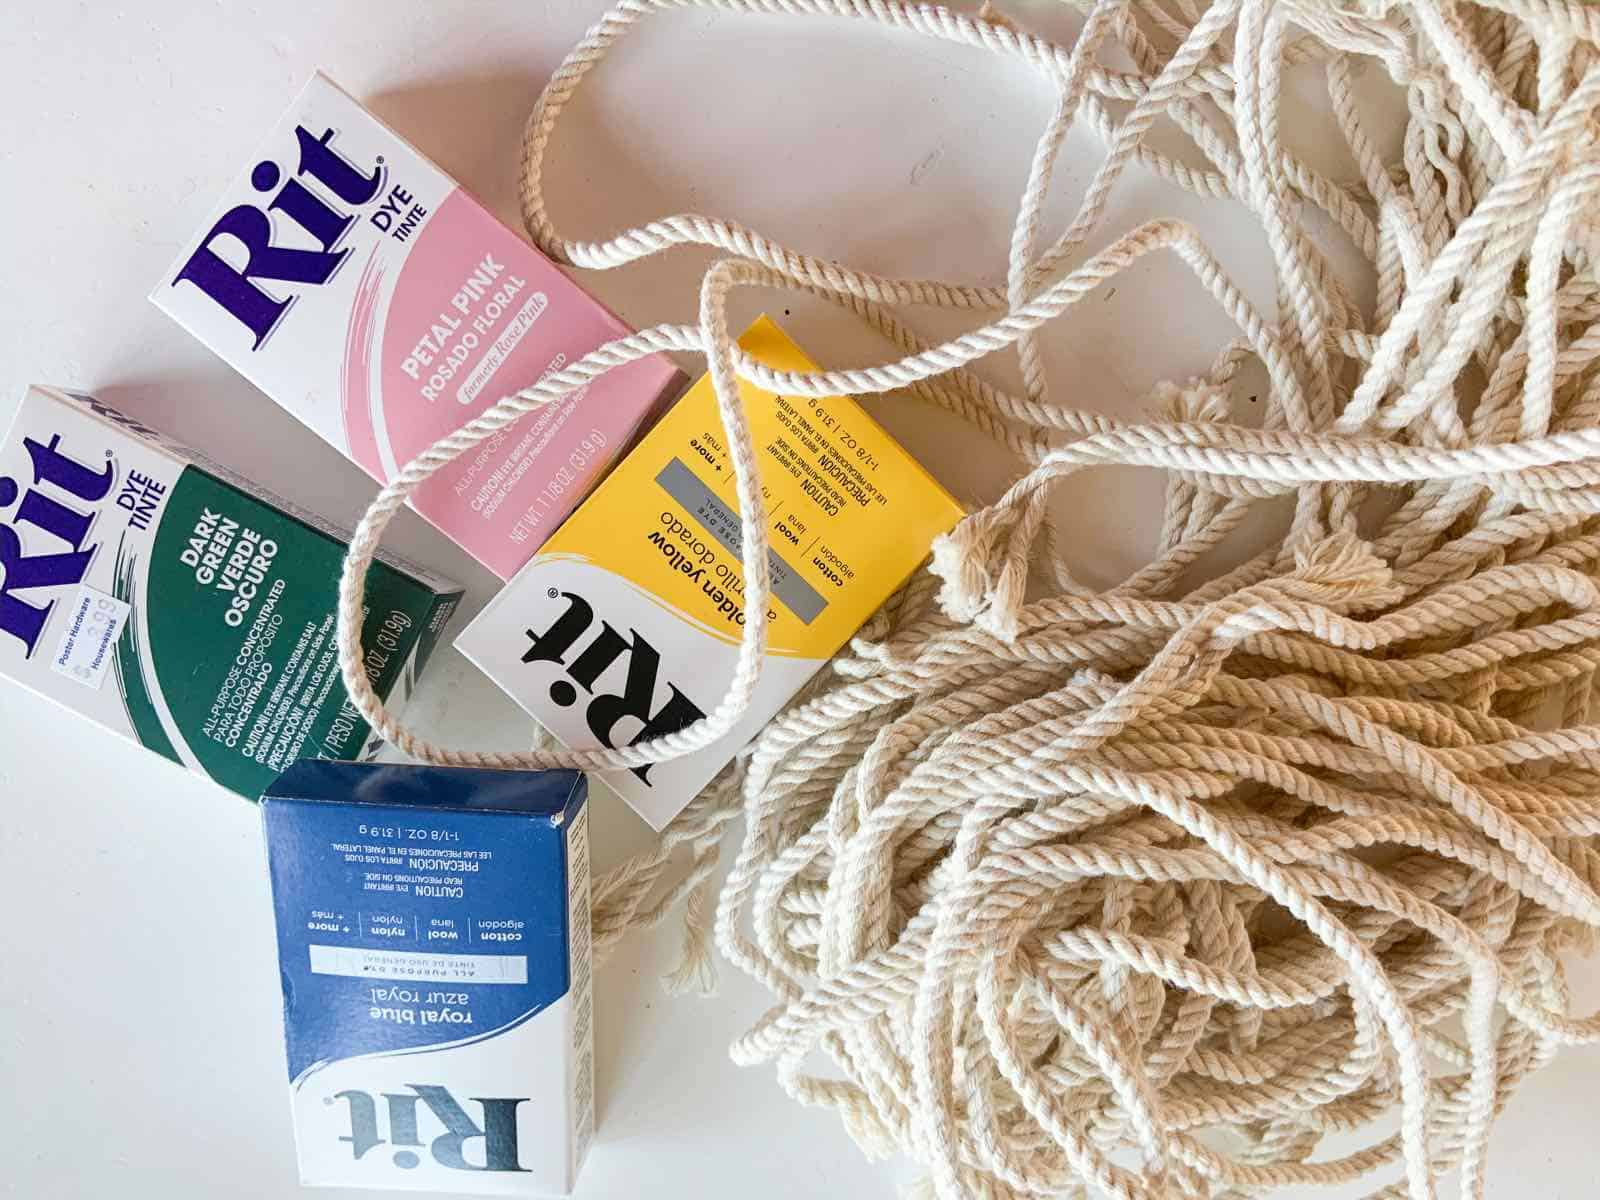 rit dye with rope